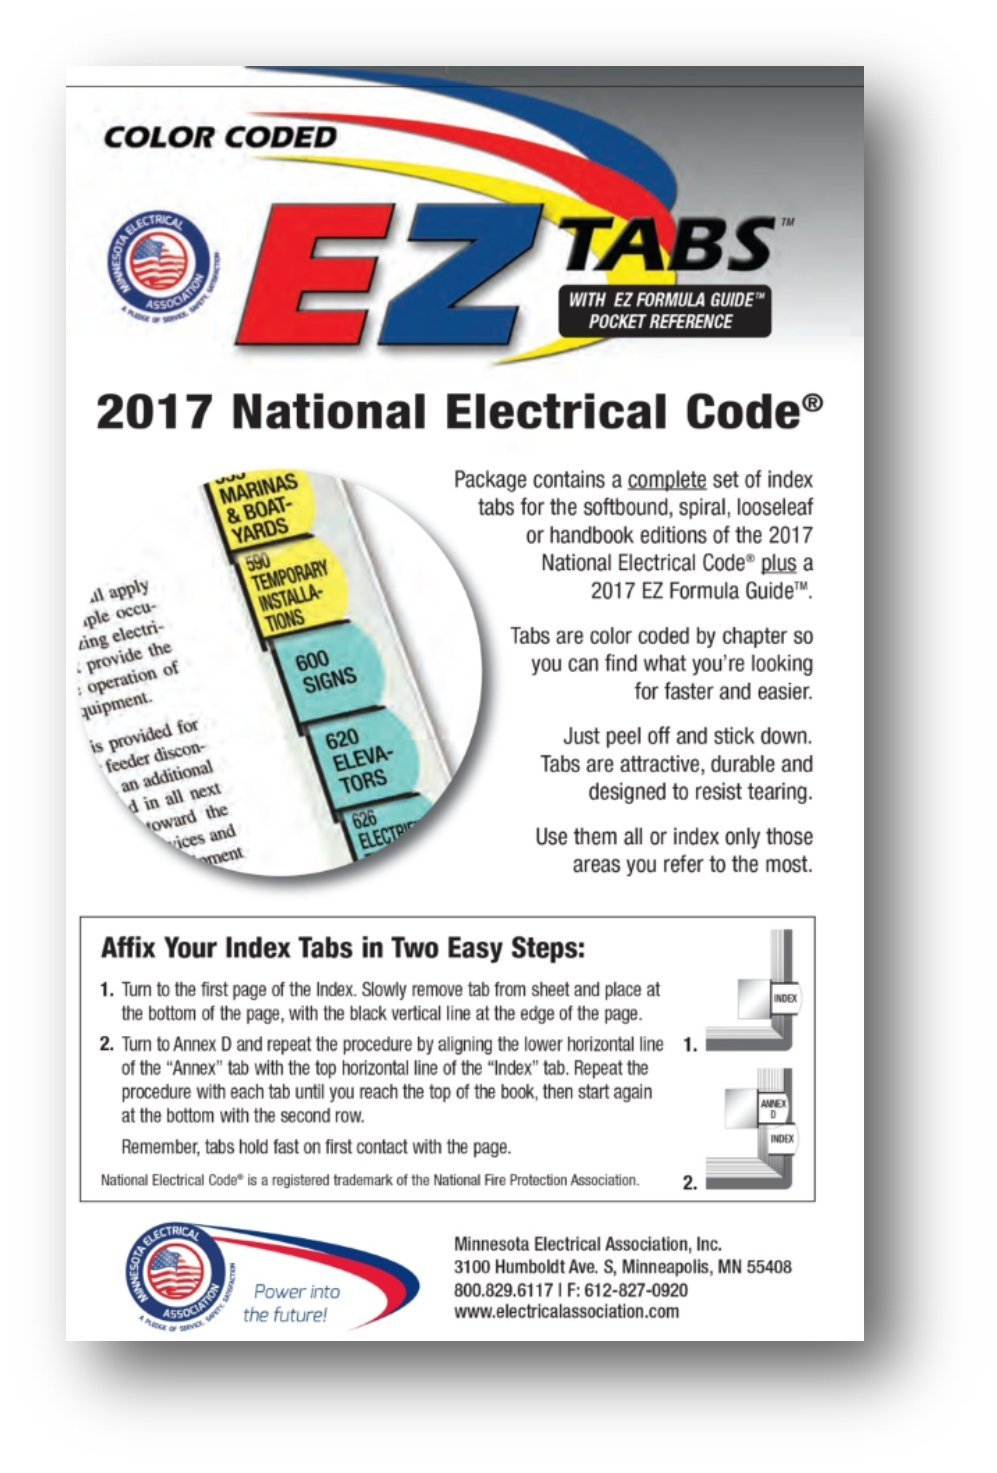 EZ TABS (COLOR CODED) 2017 : National Electrical Code (NEC), Color Coded EZ Tabs with EZ Formula Guide, for 2017 Edition NEC Code